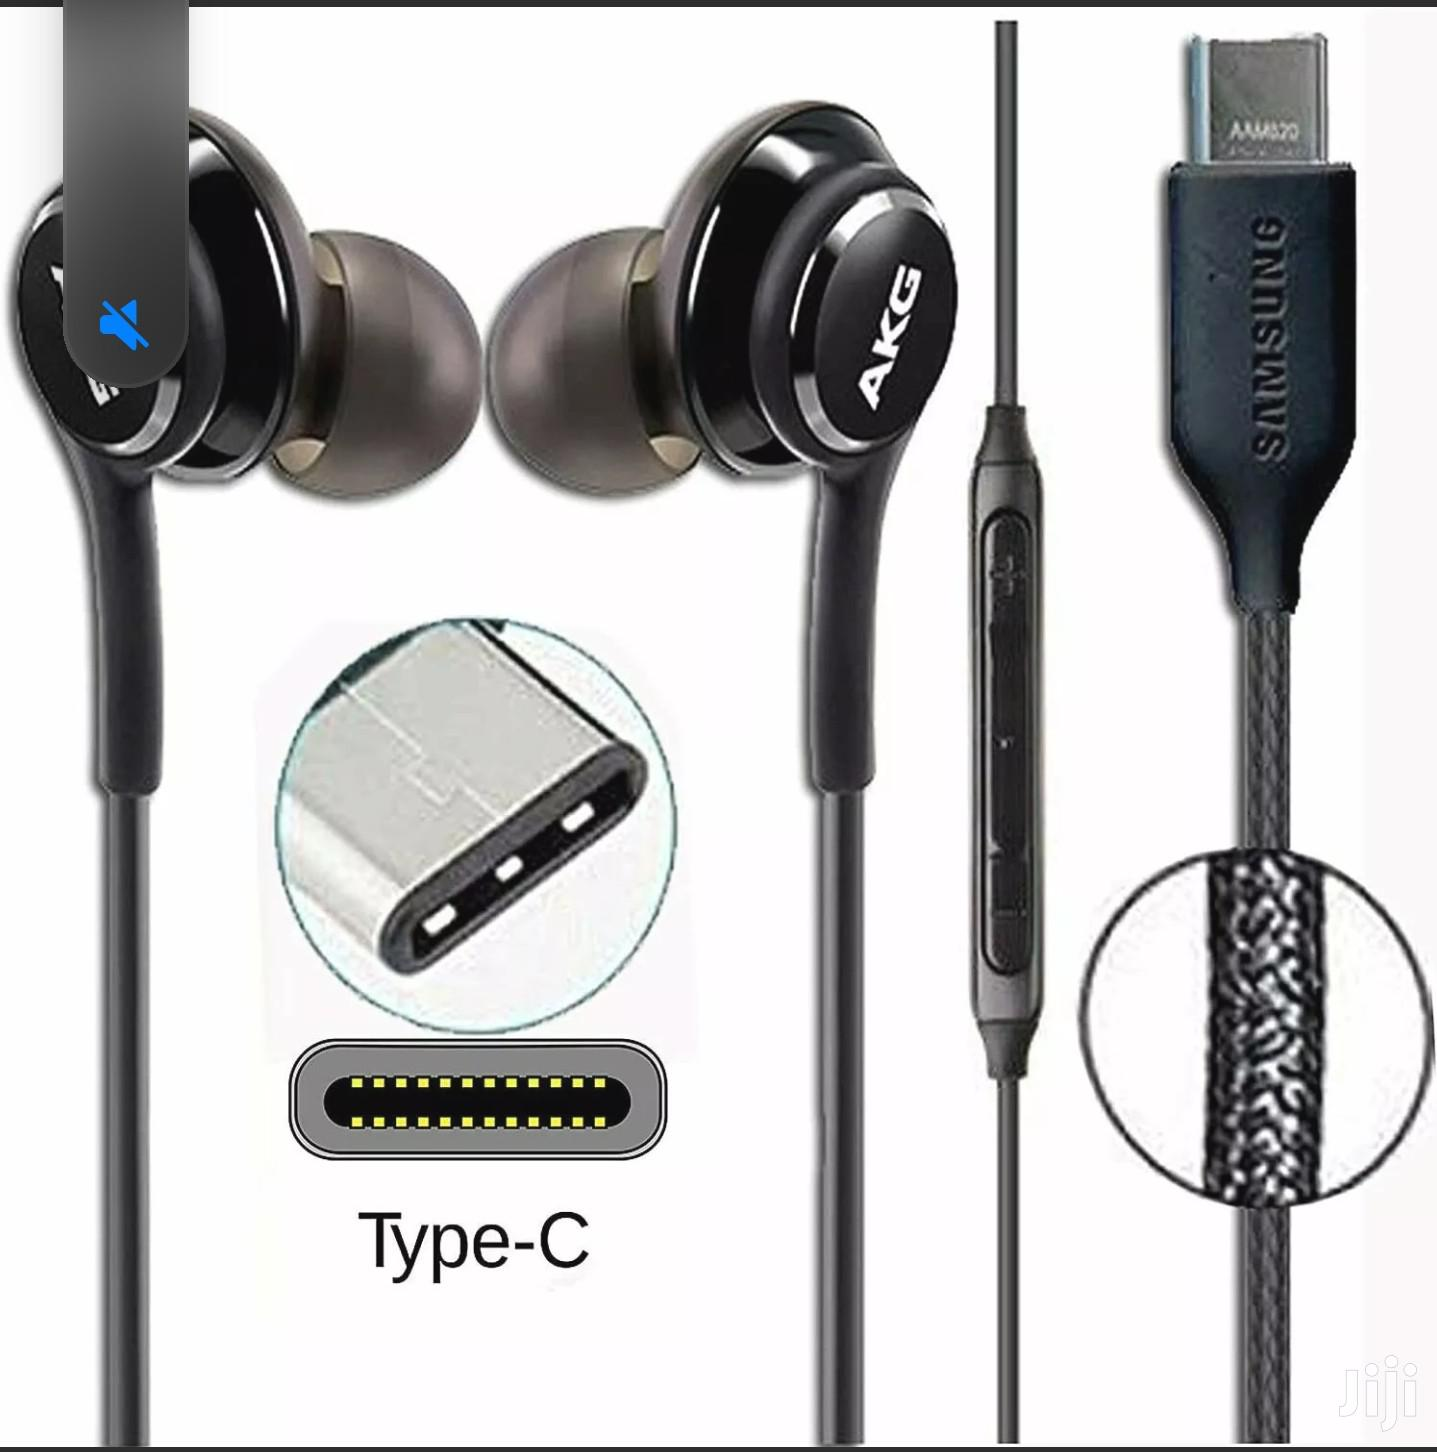 Samsung Earphones Headset for Galaxy Note 10 / S10 / S20 | Accessories for Mobile Phones & Tablets for sale in Accra Metropolitan, Greater Accra, Ghana